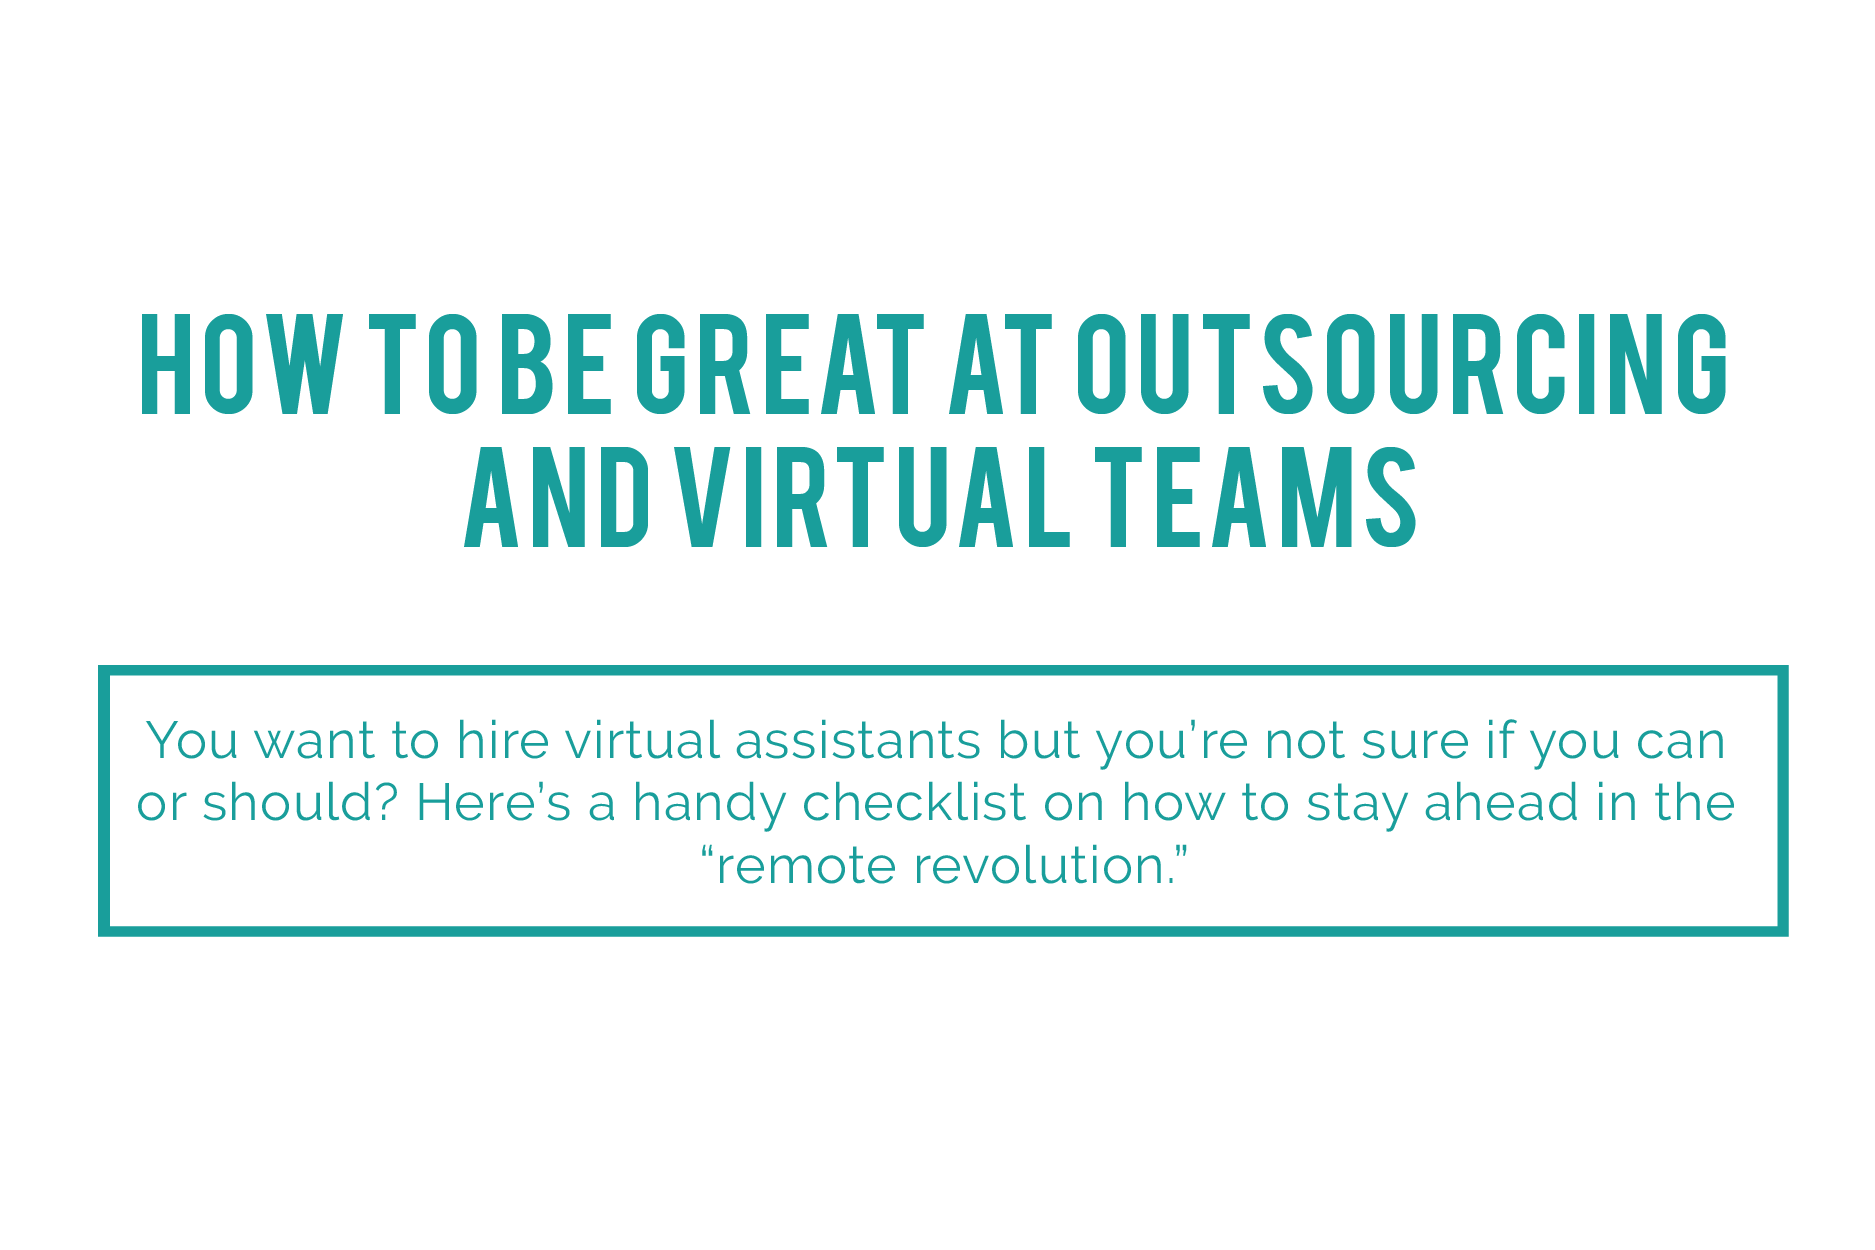 HOW_TO_BE_GREAT_AT_OUTSOURCING